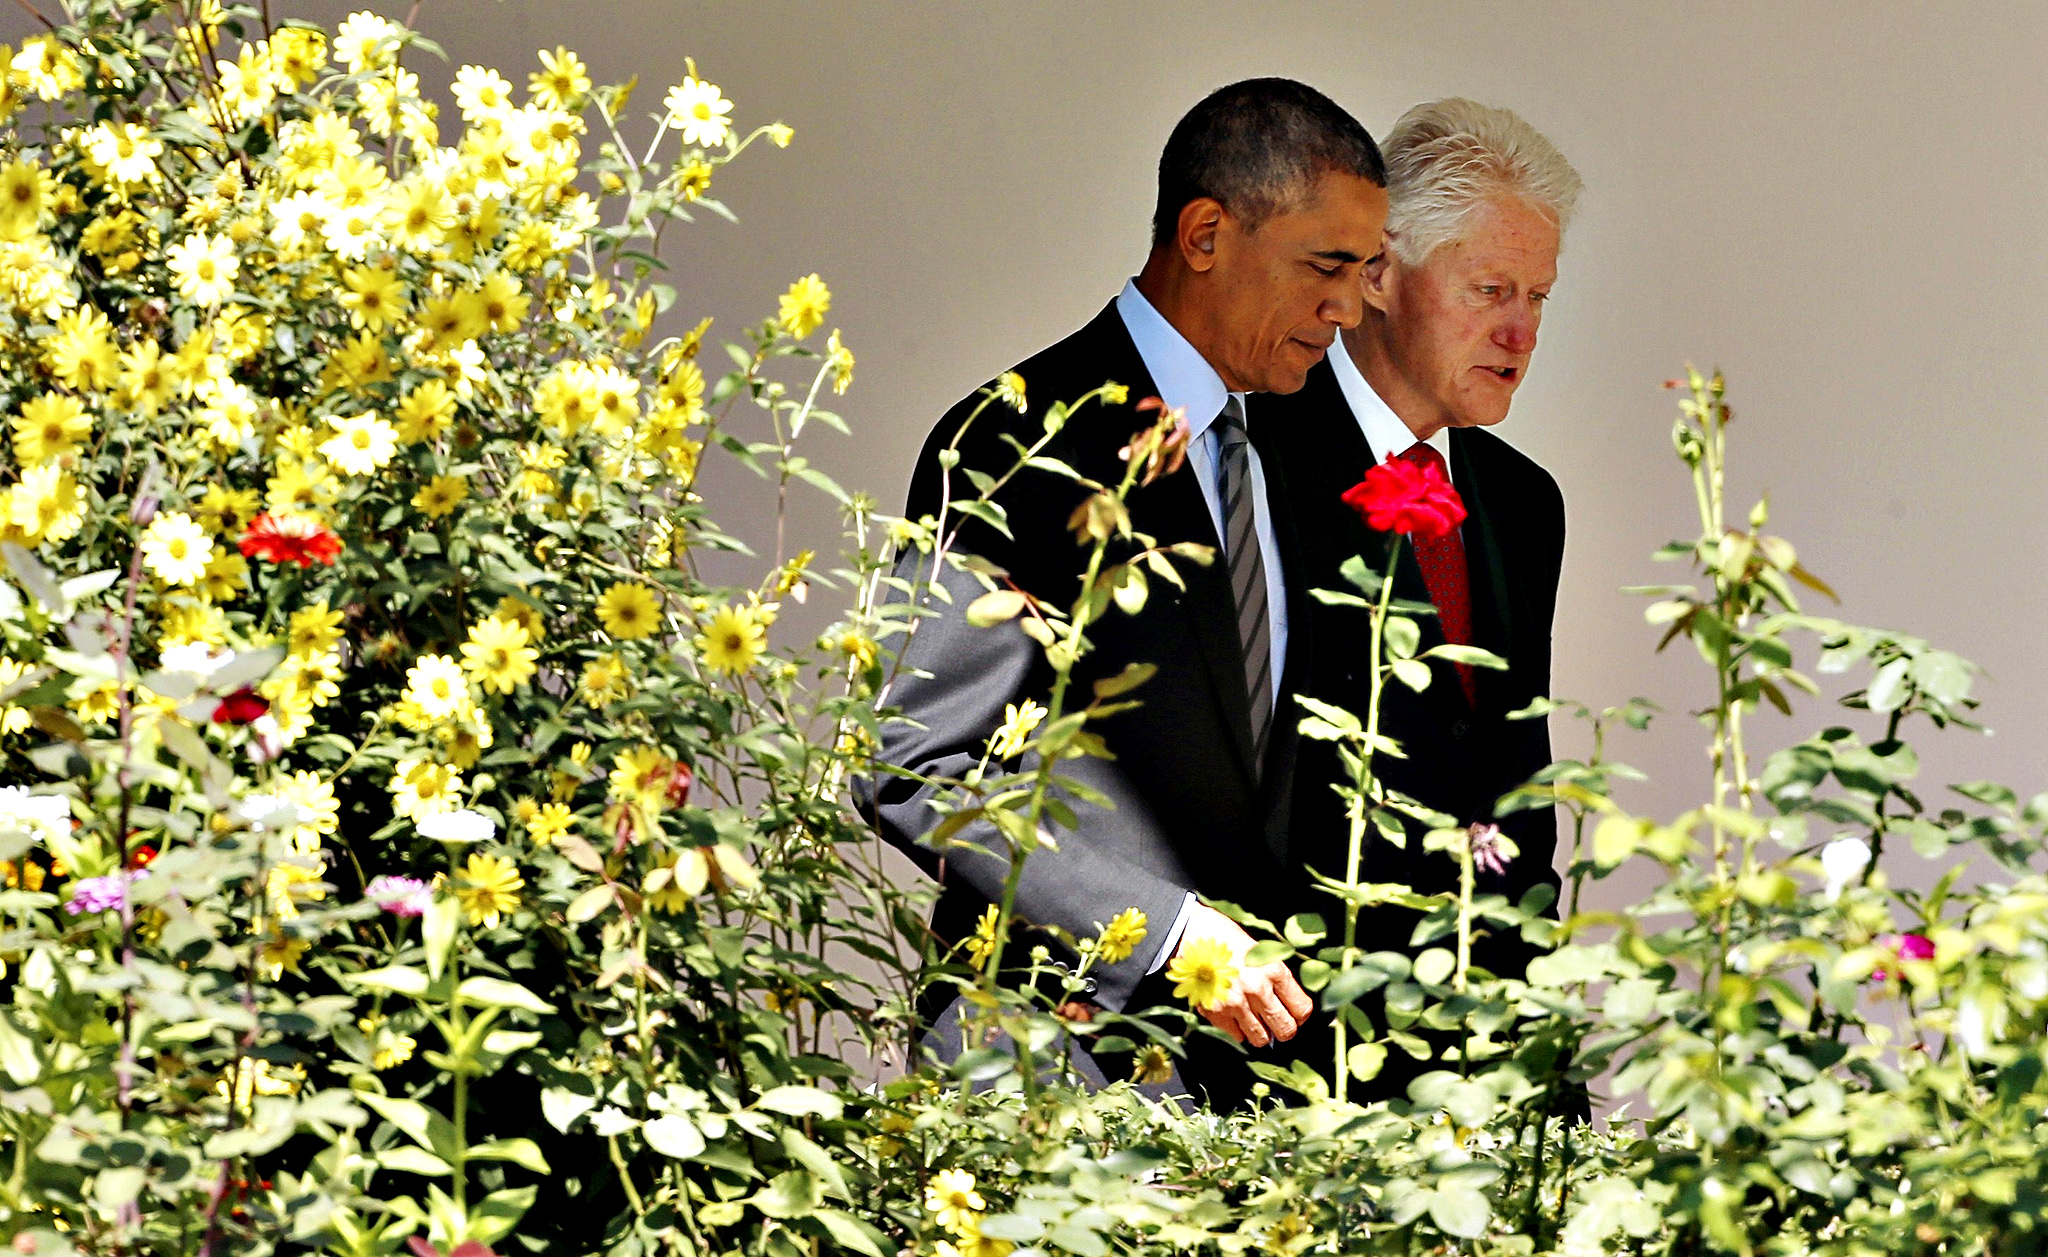 U.S. President Barack Obama and former President Bill Clinton walk past the Rose Garden to host an event marking the 20th anniversary of the national service program AmeriCorps at the White House in Washington September 12, 2014. In 1993, Clinton signed the bill that created AmeriCorps.